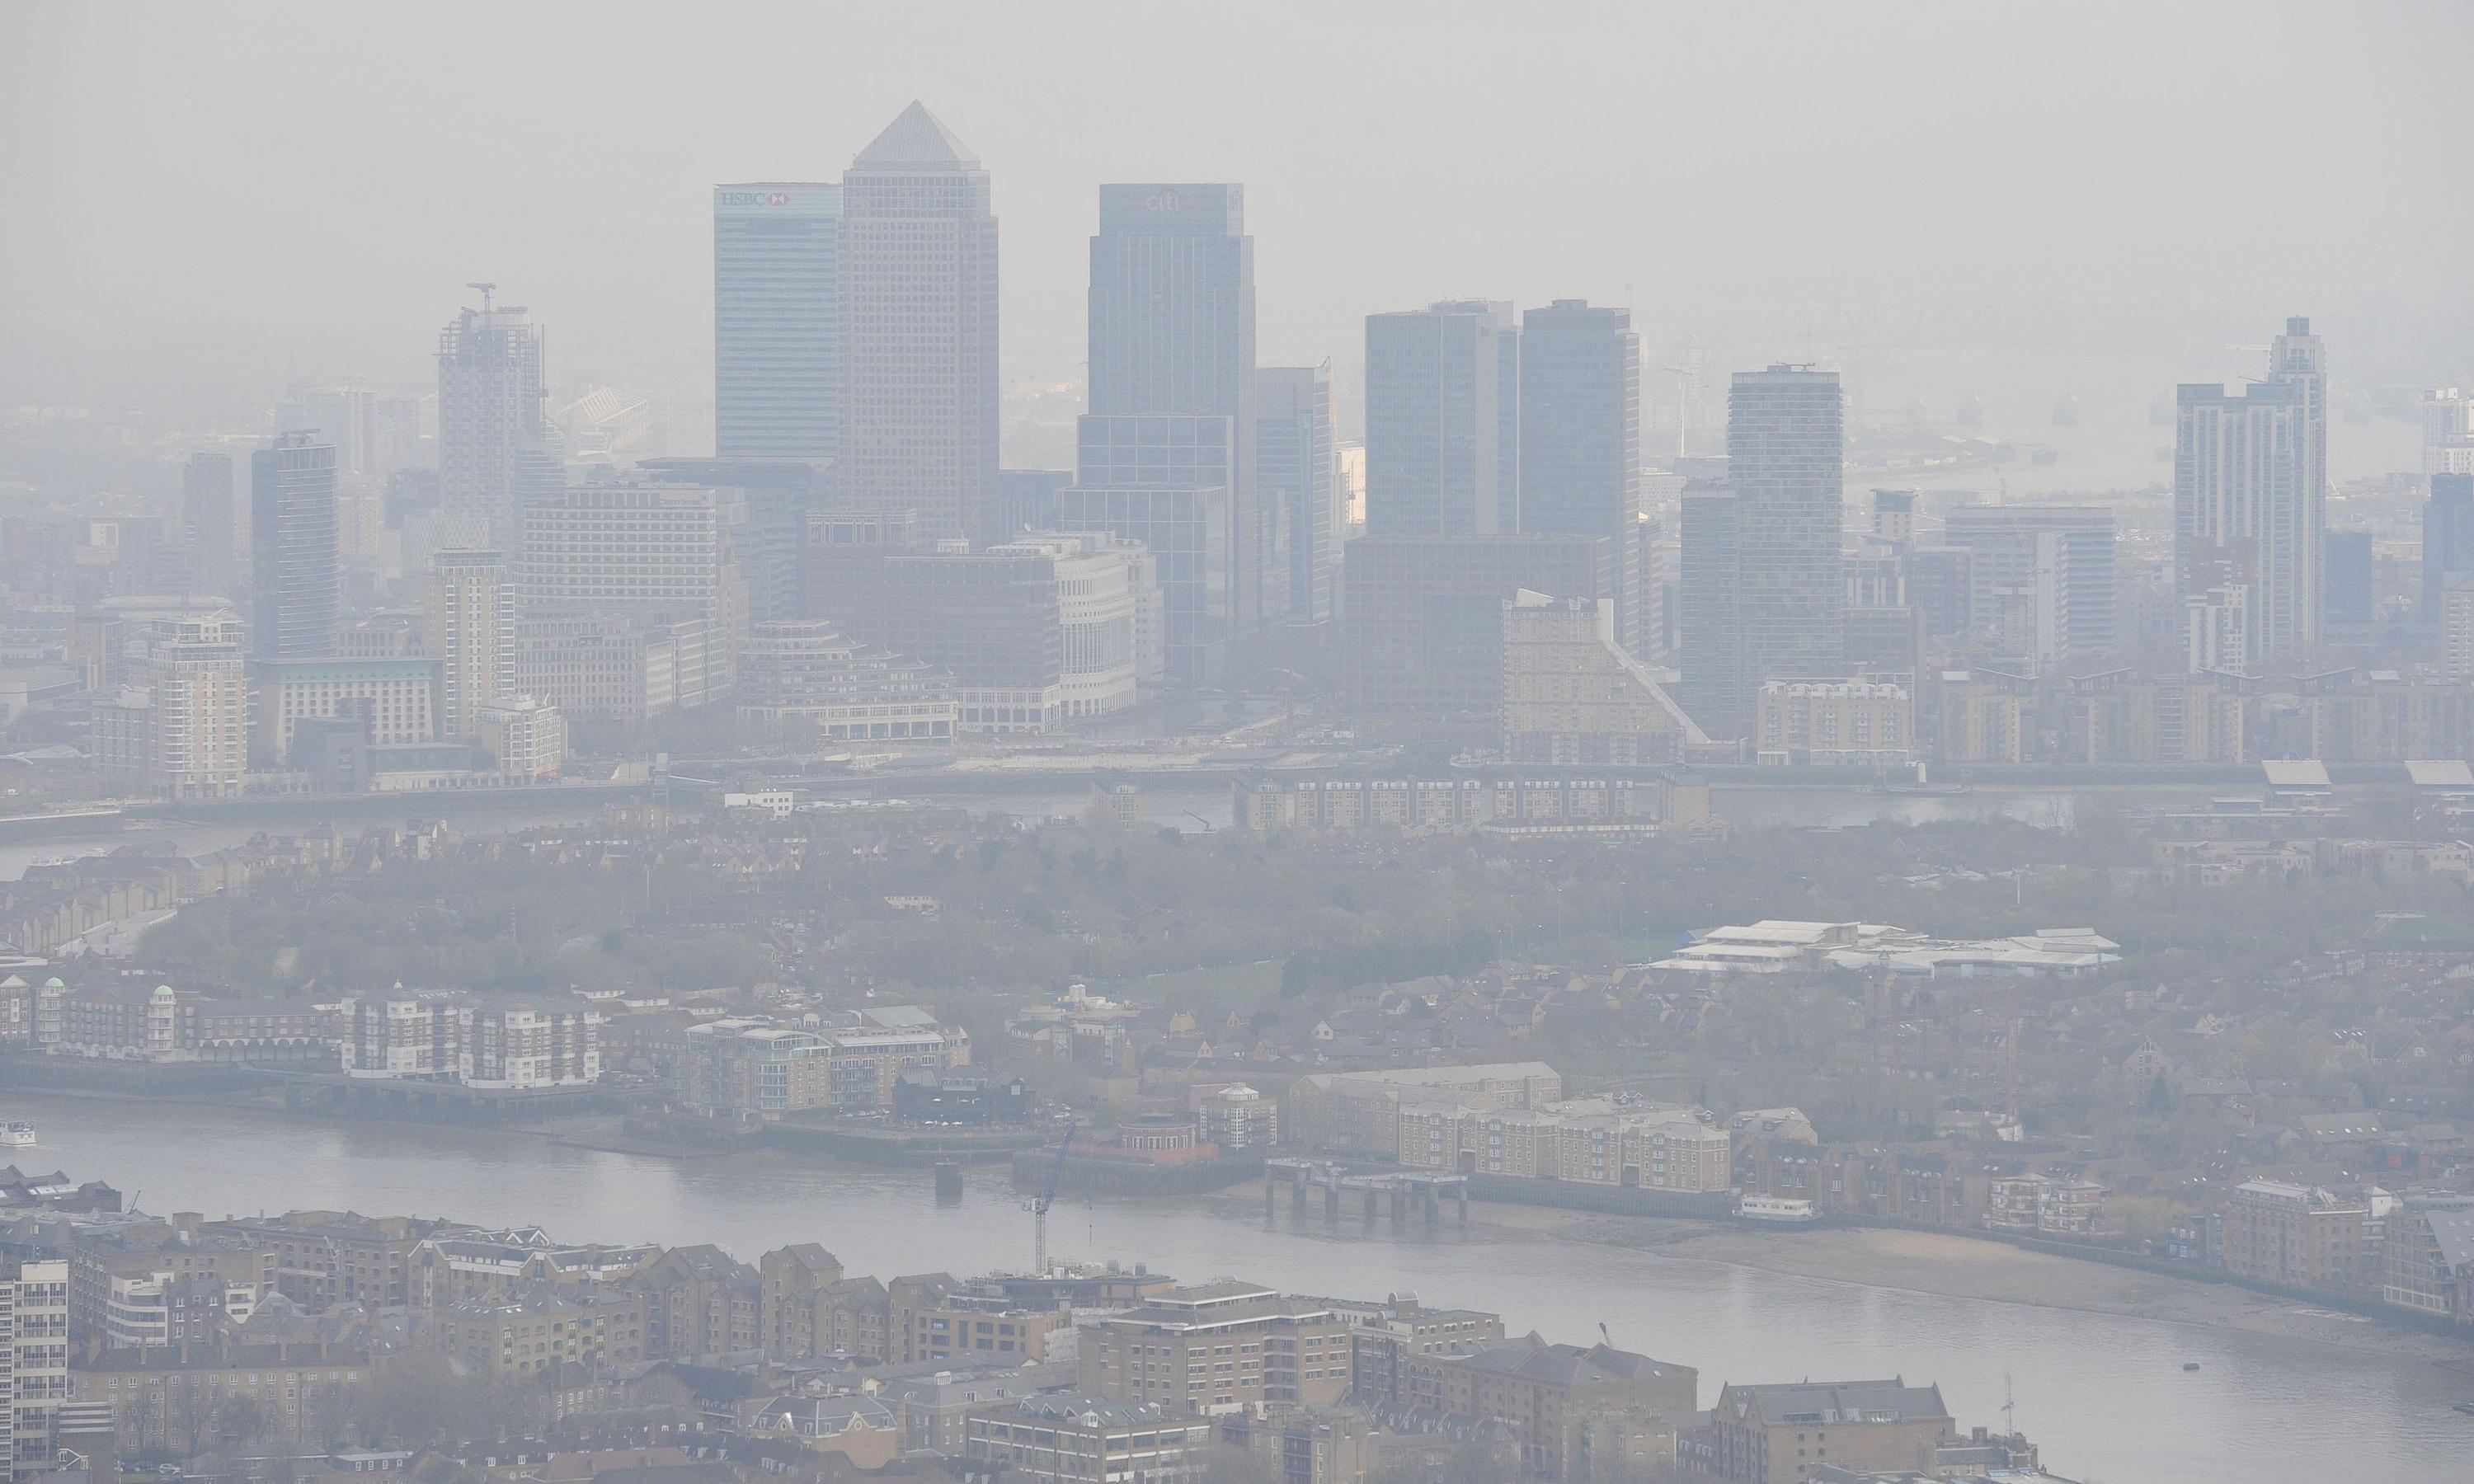 Air pollution deaths are double previous estimates, finds research